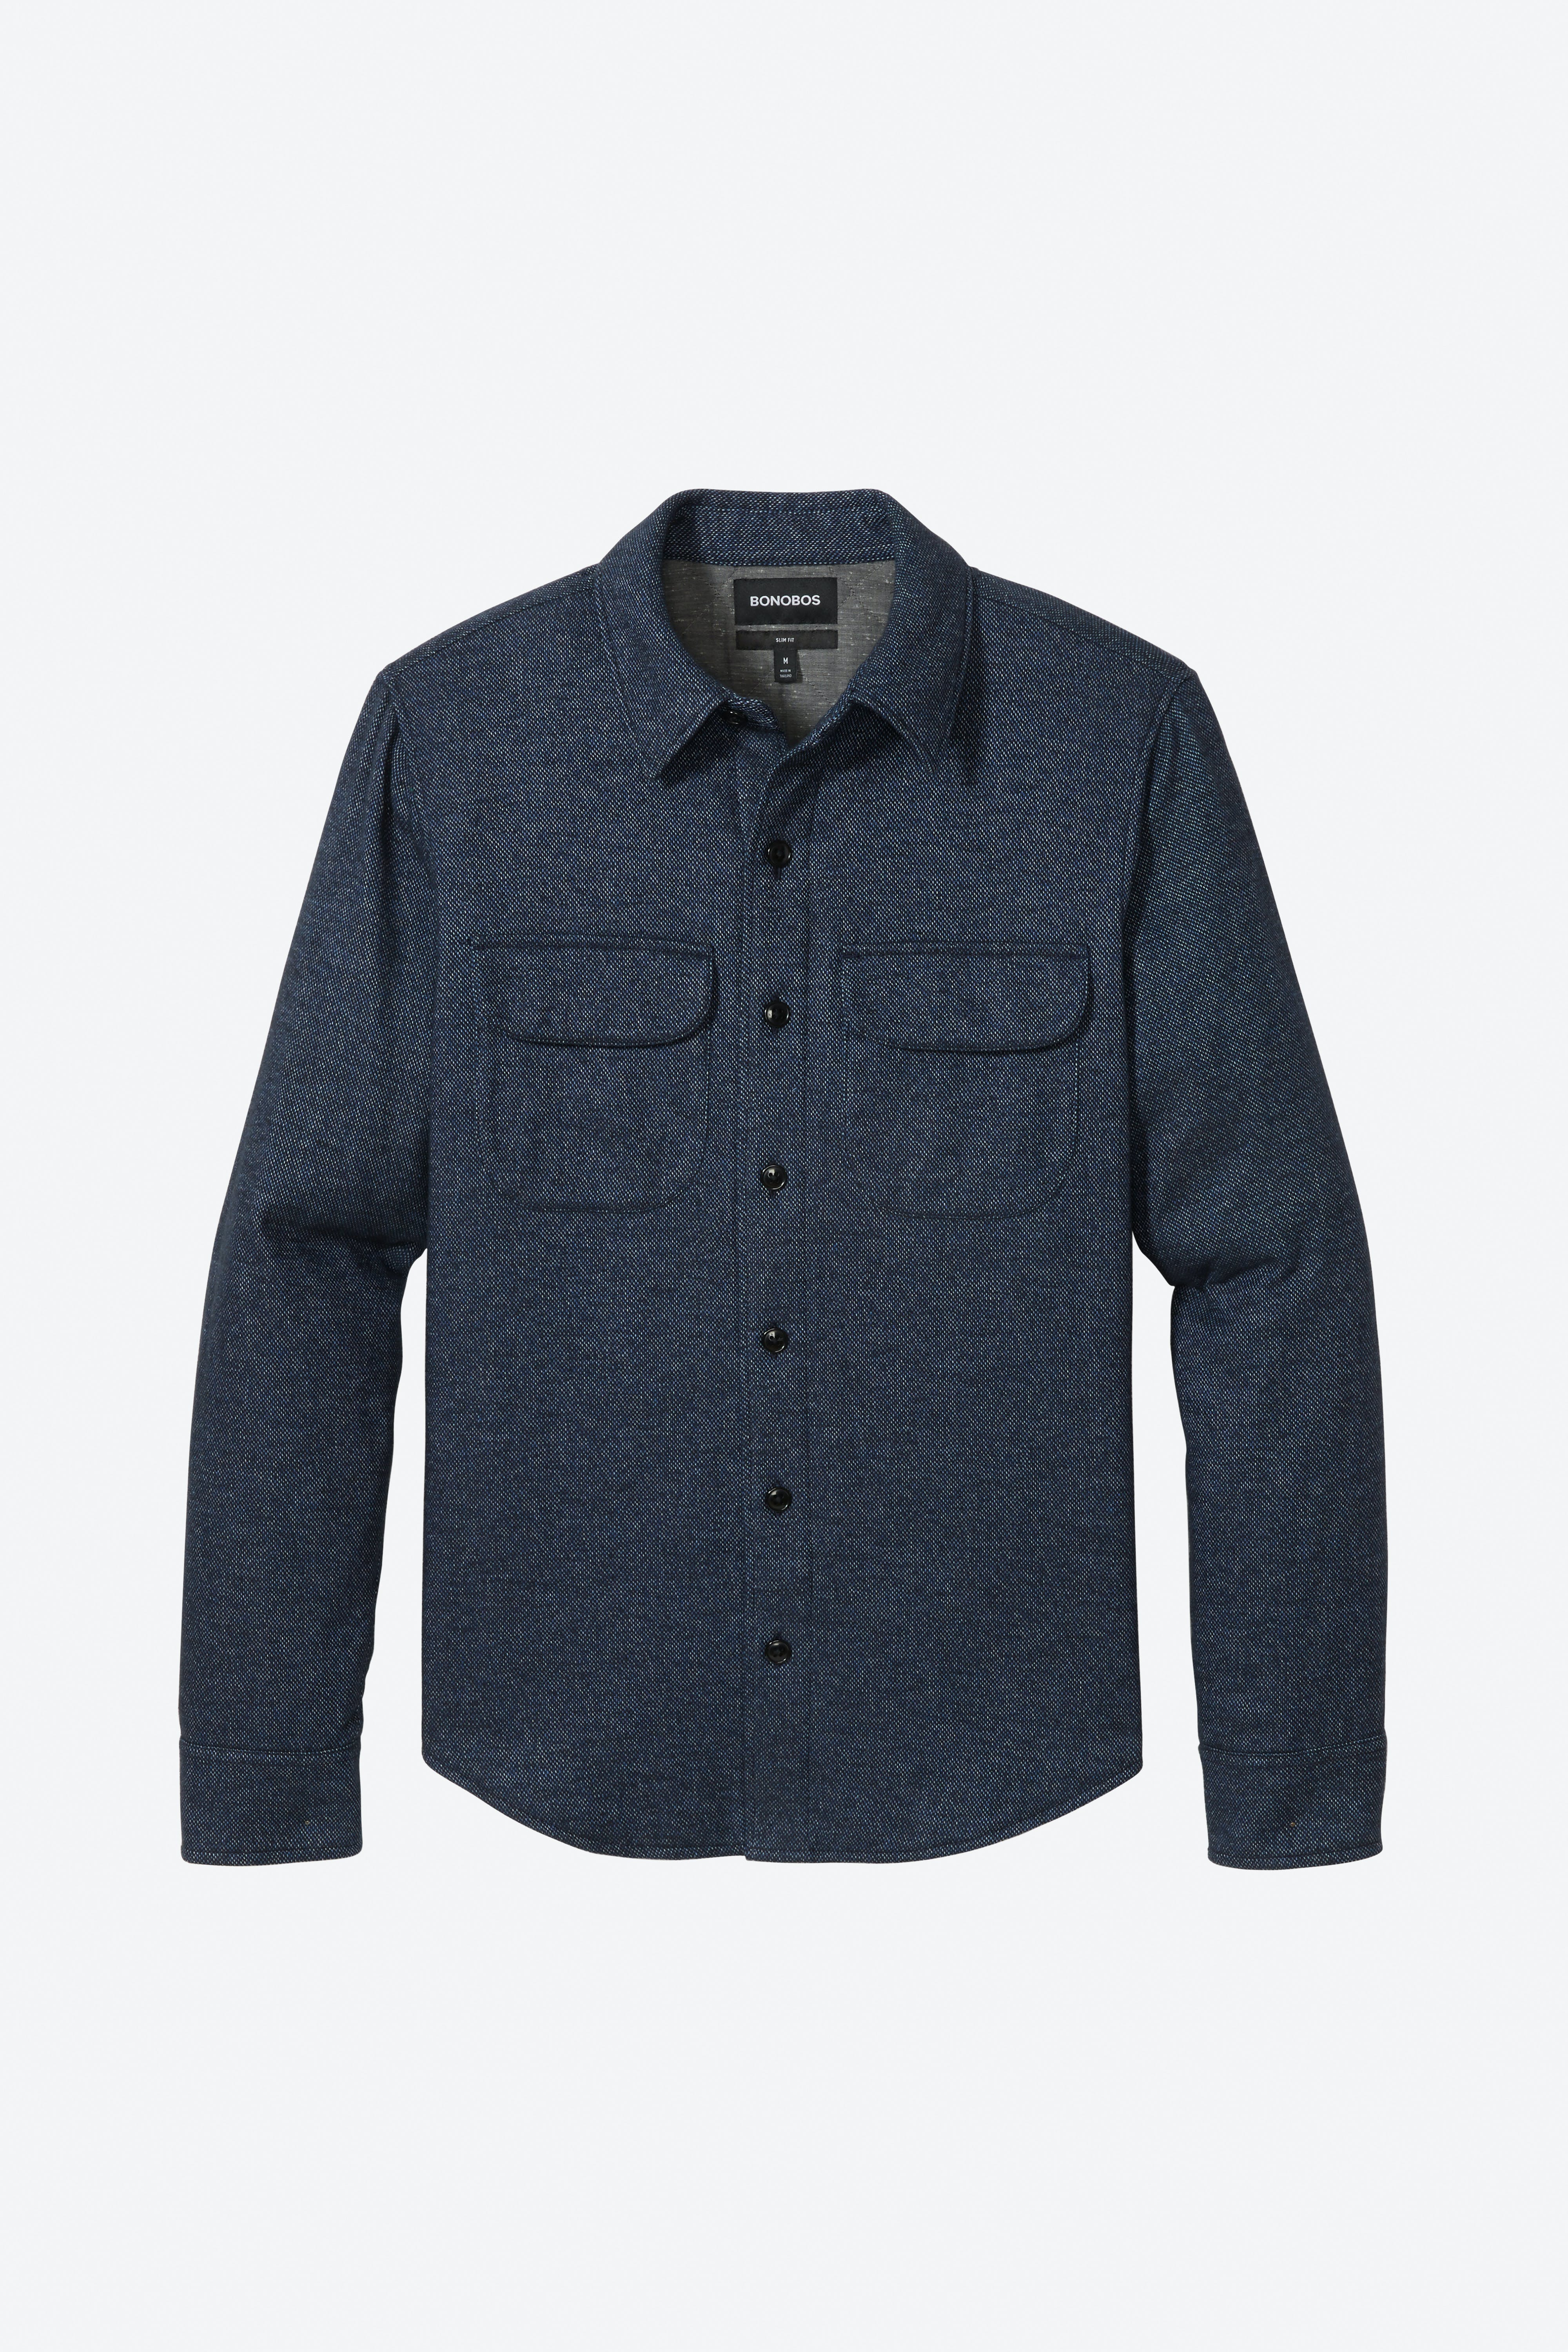 The Cotton Shirt Jacket Extended Sizes